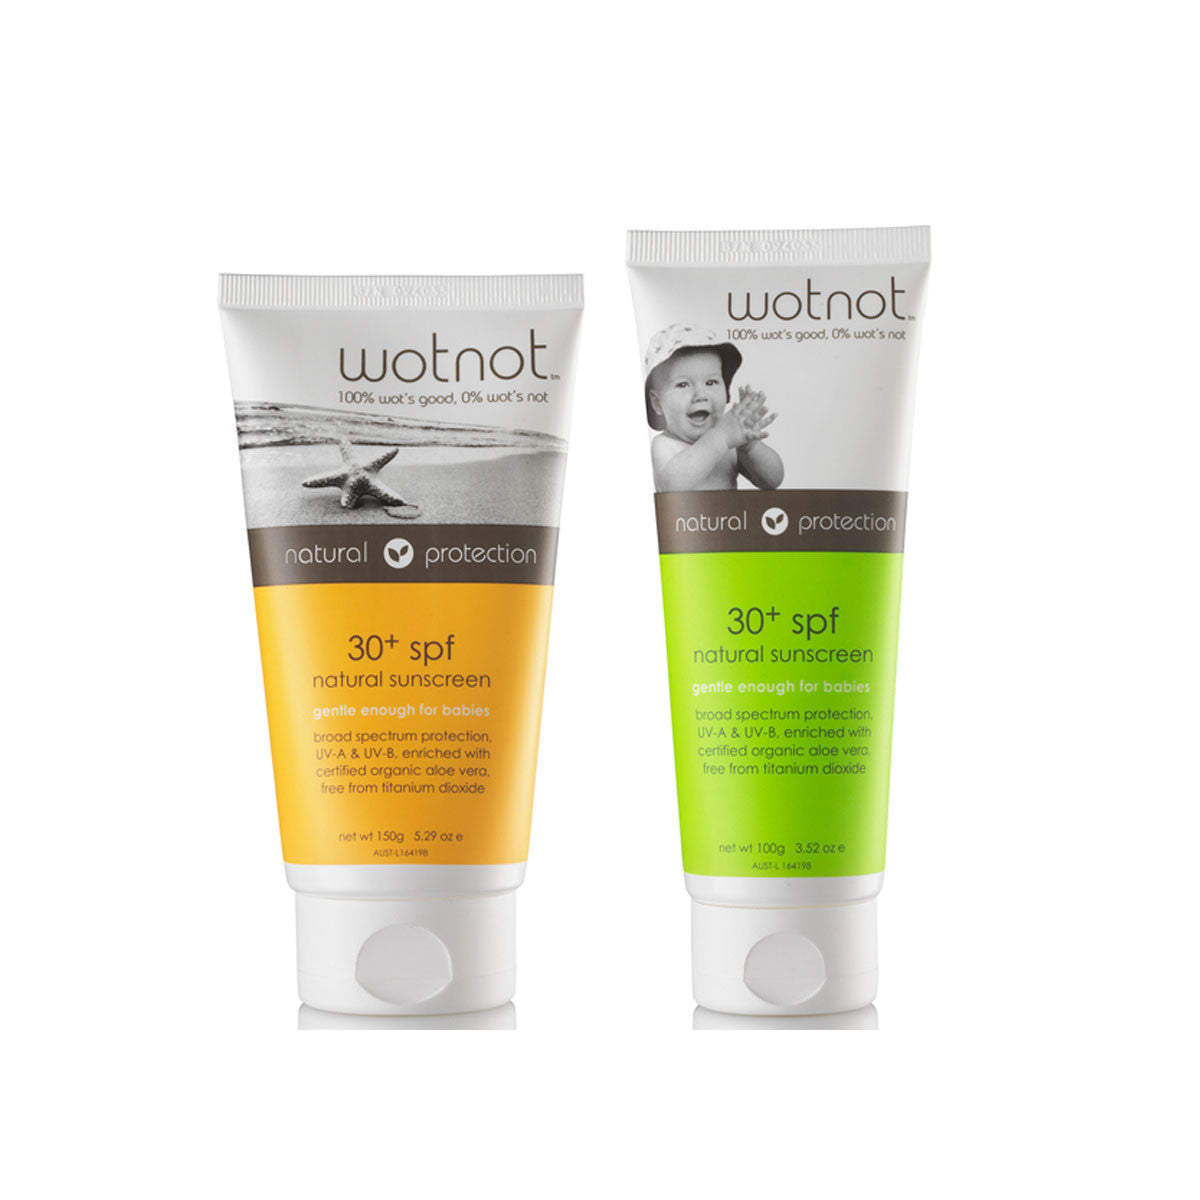 Wotnot Natural Sunscreen SPF 30+ Wotnot Sunscreen at Little Earth Nest Eco Shop